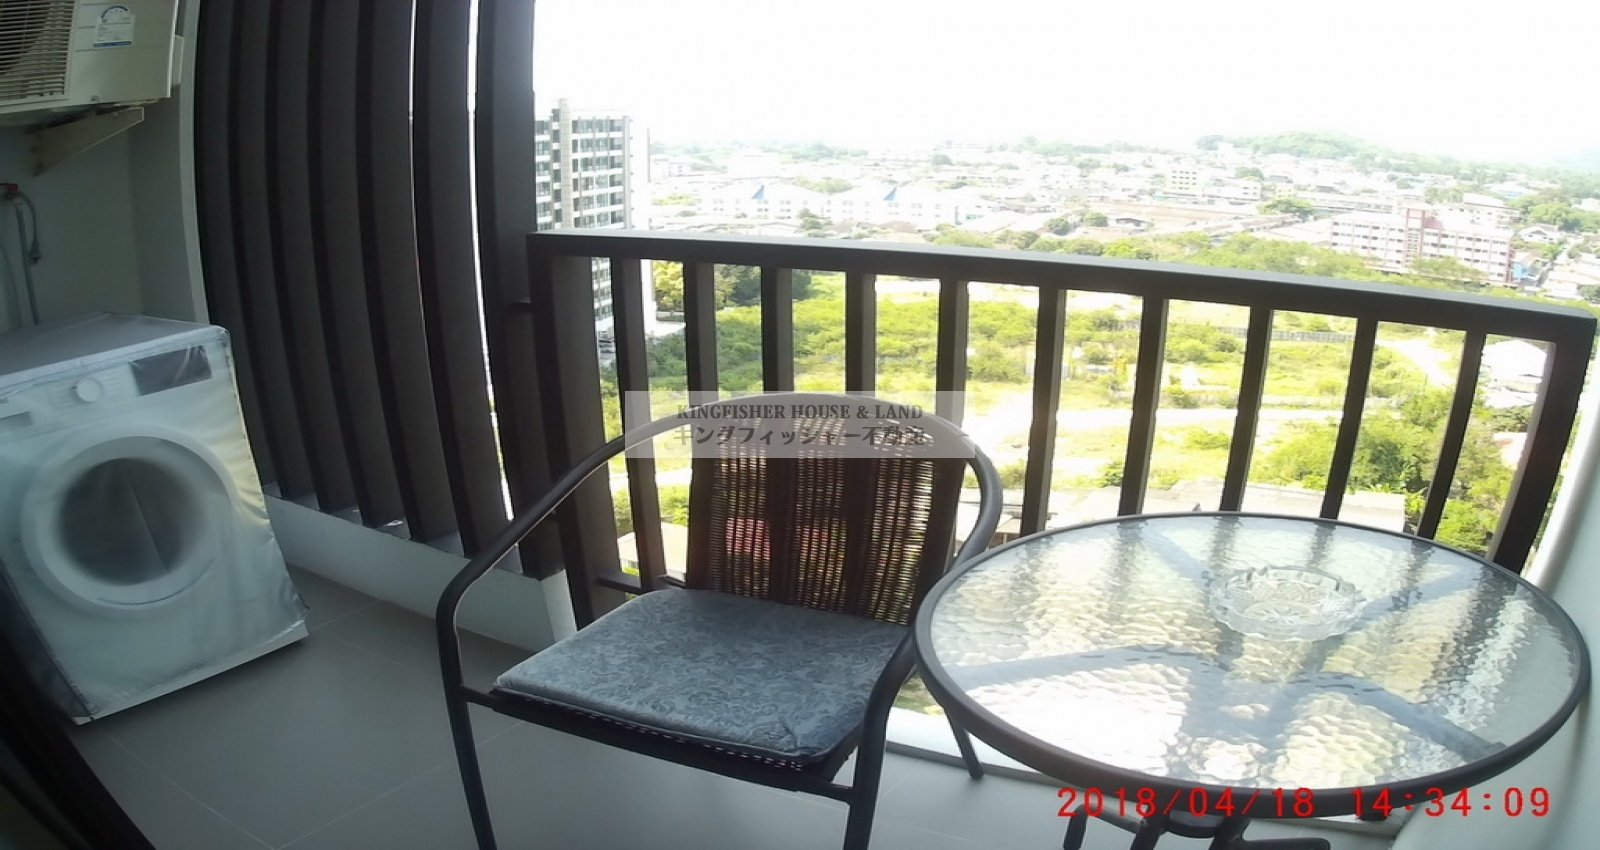 1 Bedrooms, Condominium, For Rent, 1 Bathrooms, Listing ID 1255, Sriracha, Chonburi, Thailand, 20110,